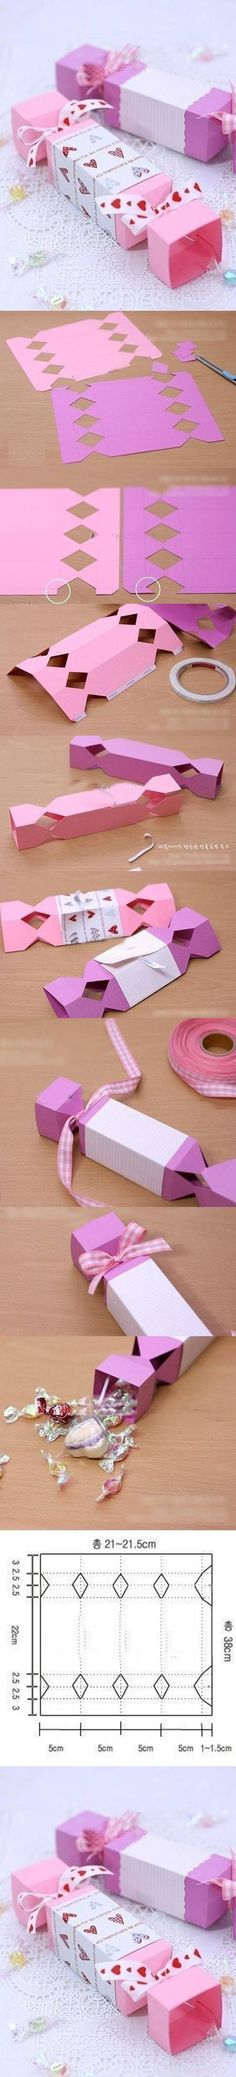 DIY Cute Candy Gift Box DIY Cute Candy Gift Box